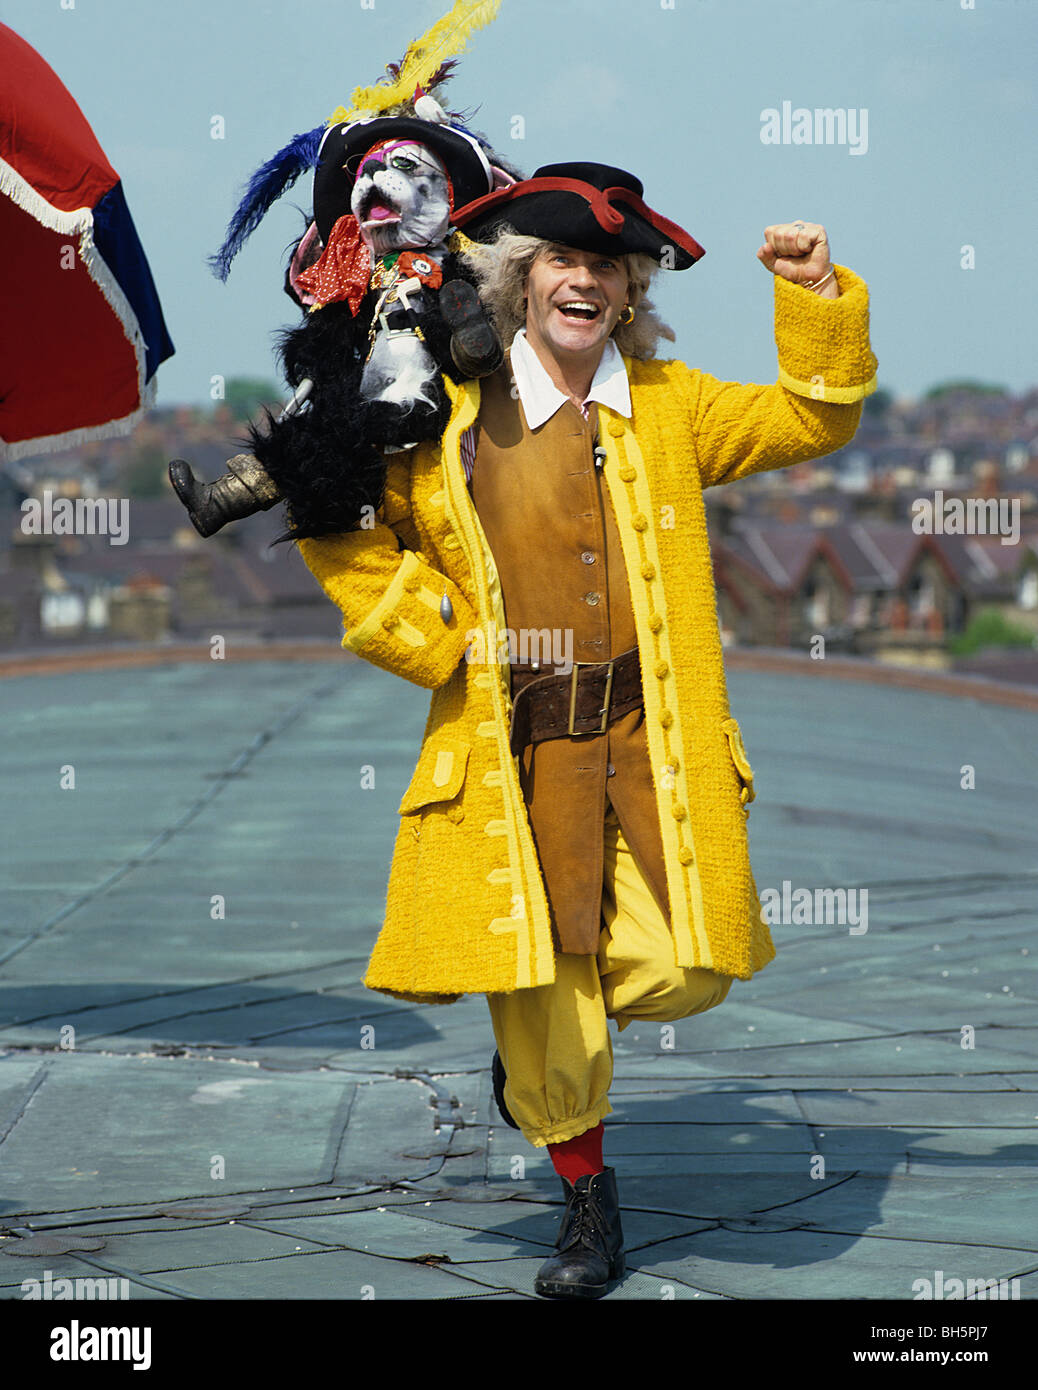 Freddie Starr as Pirate - Stock Image